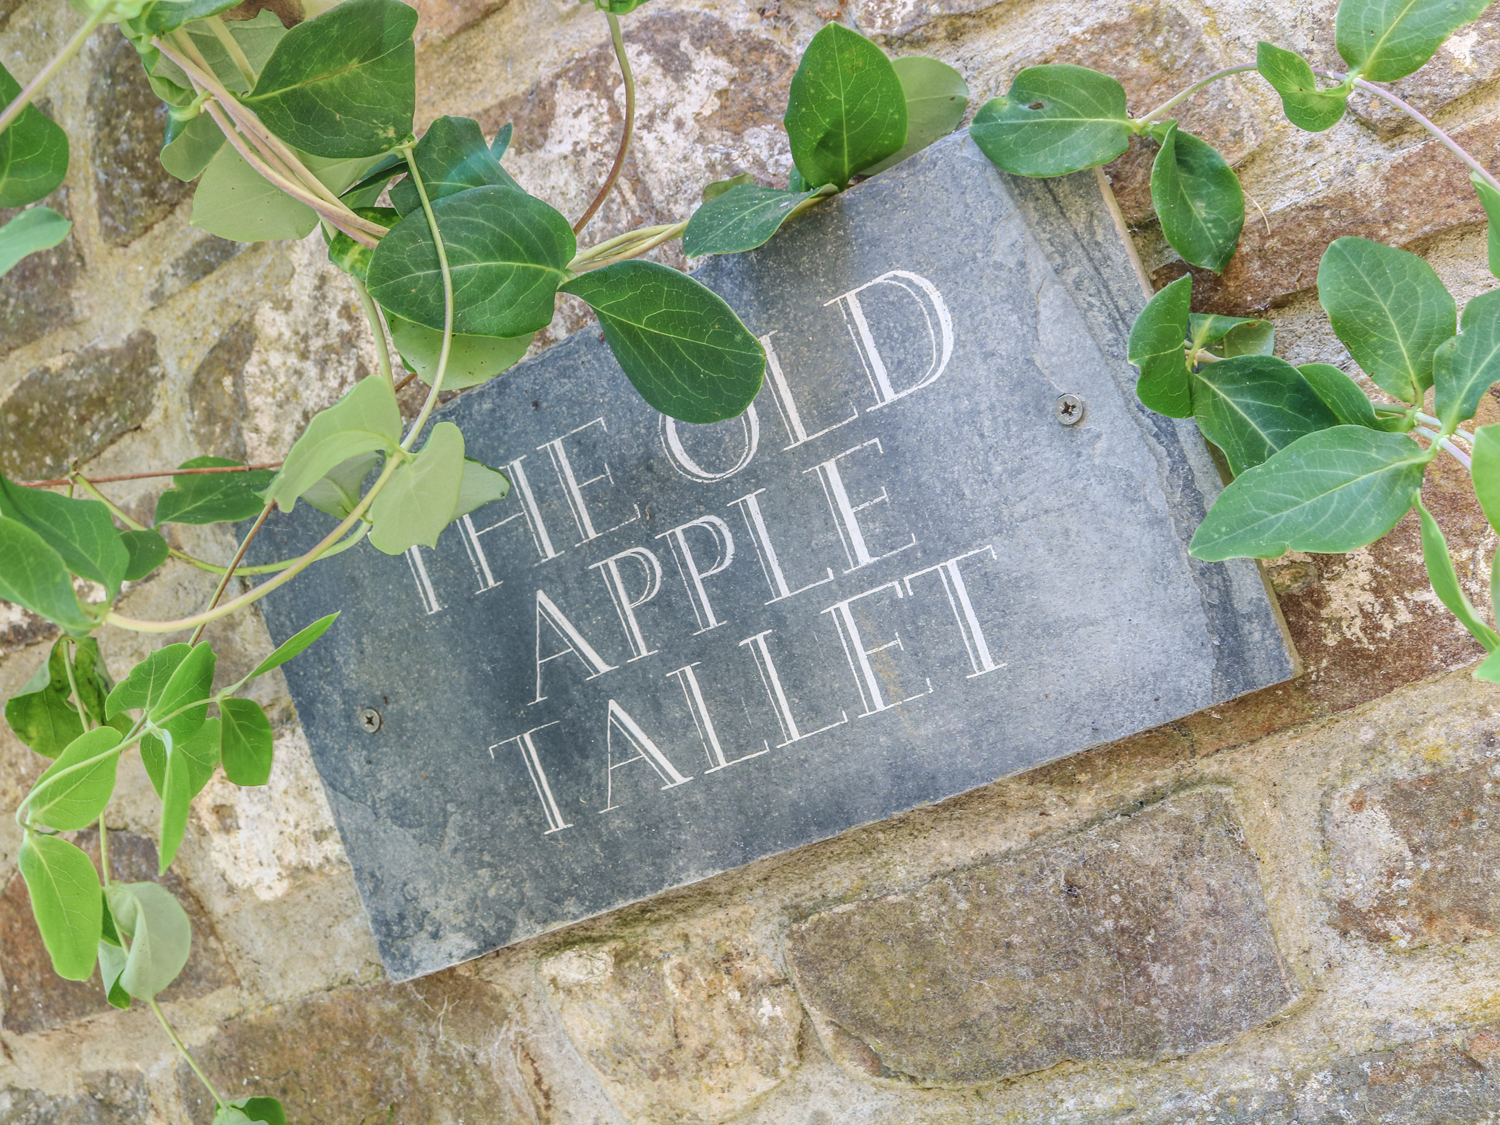 The Old Apple Tallet